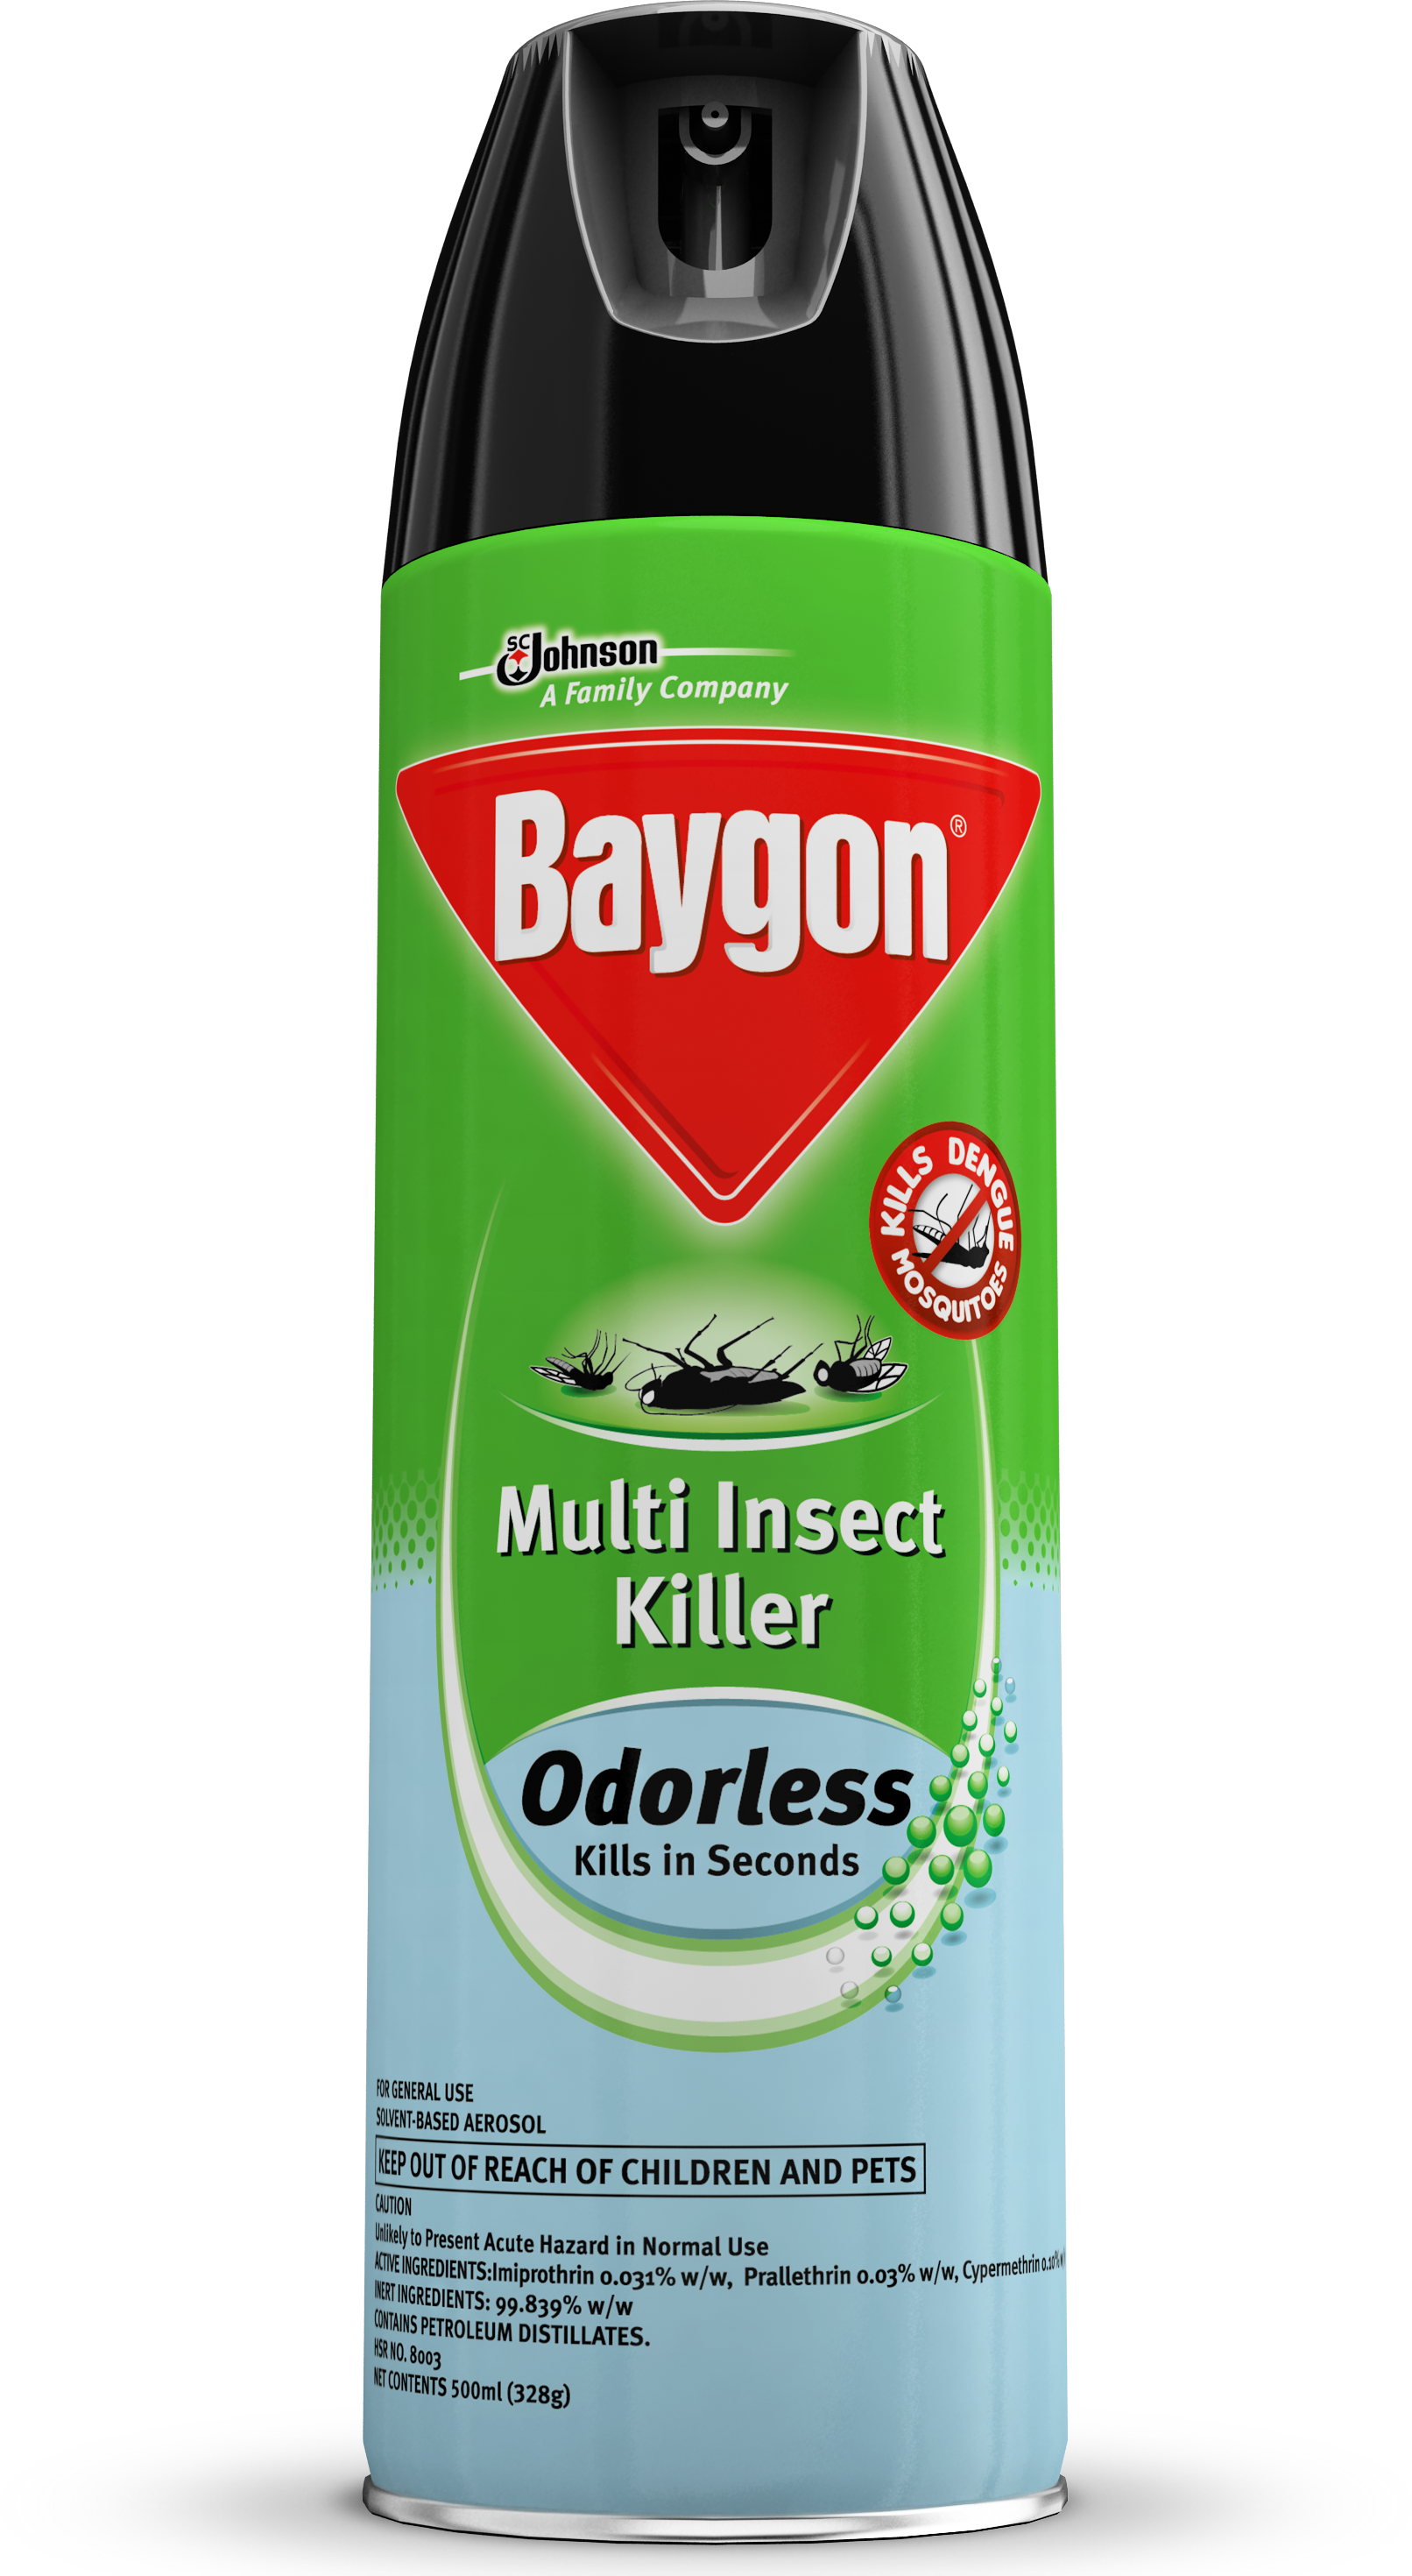 What S Good For Roaches: Baygon Multi Insect Killer Odorless